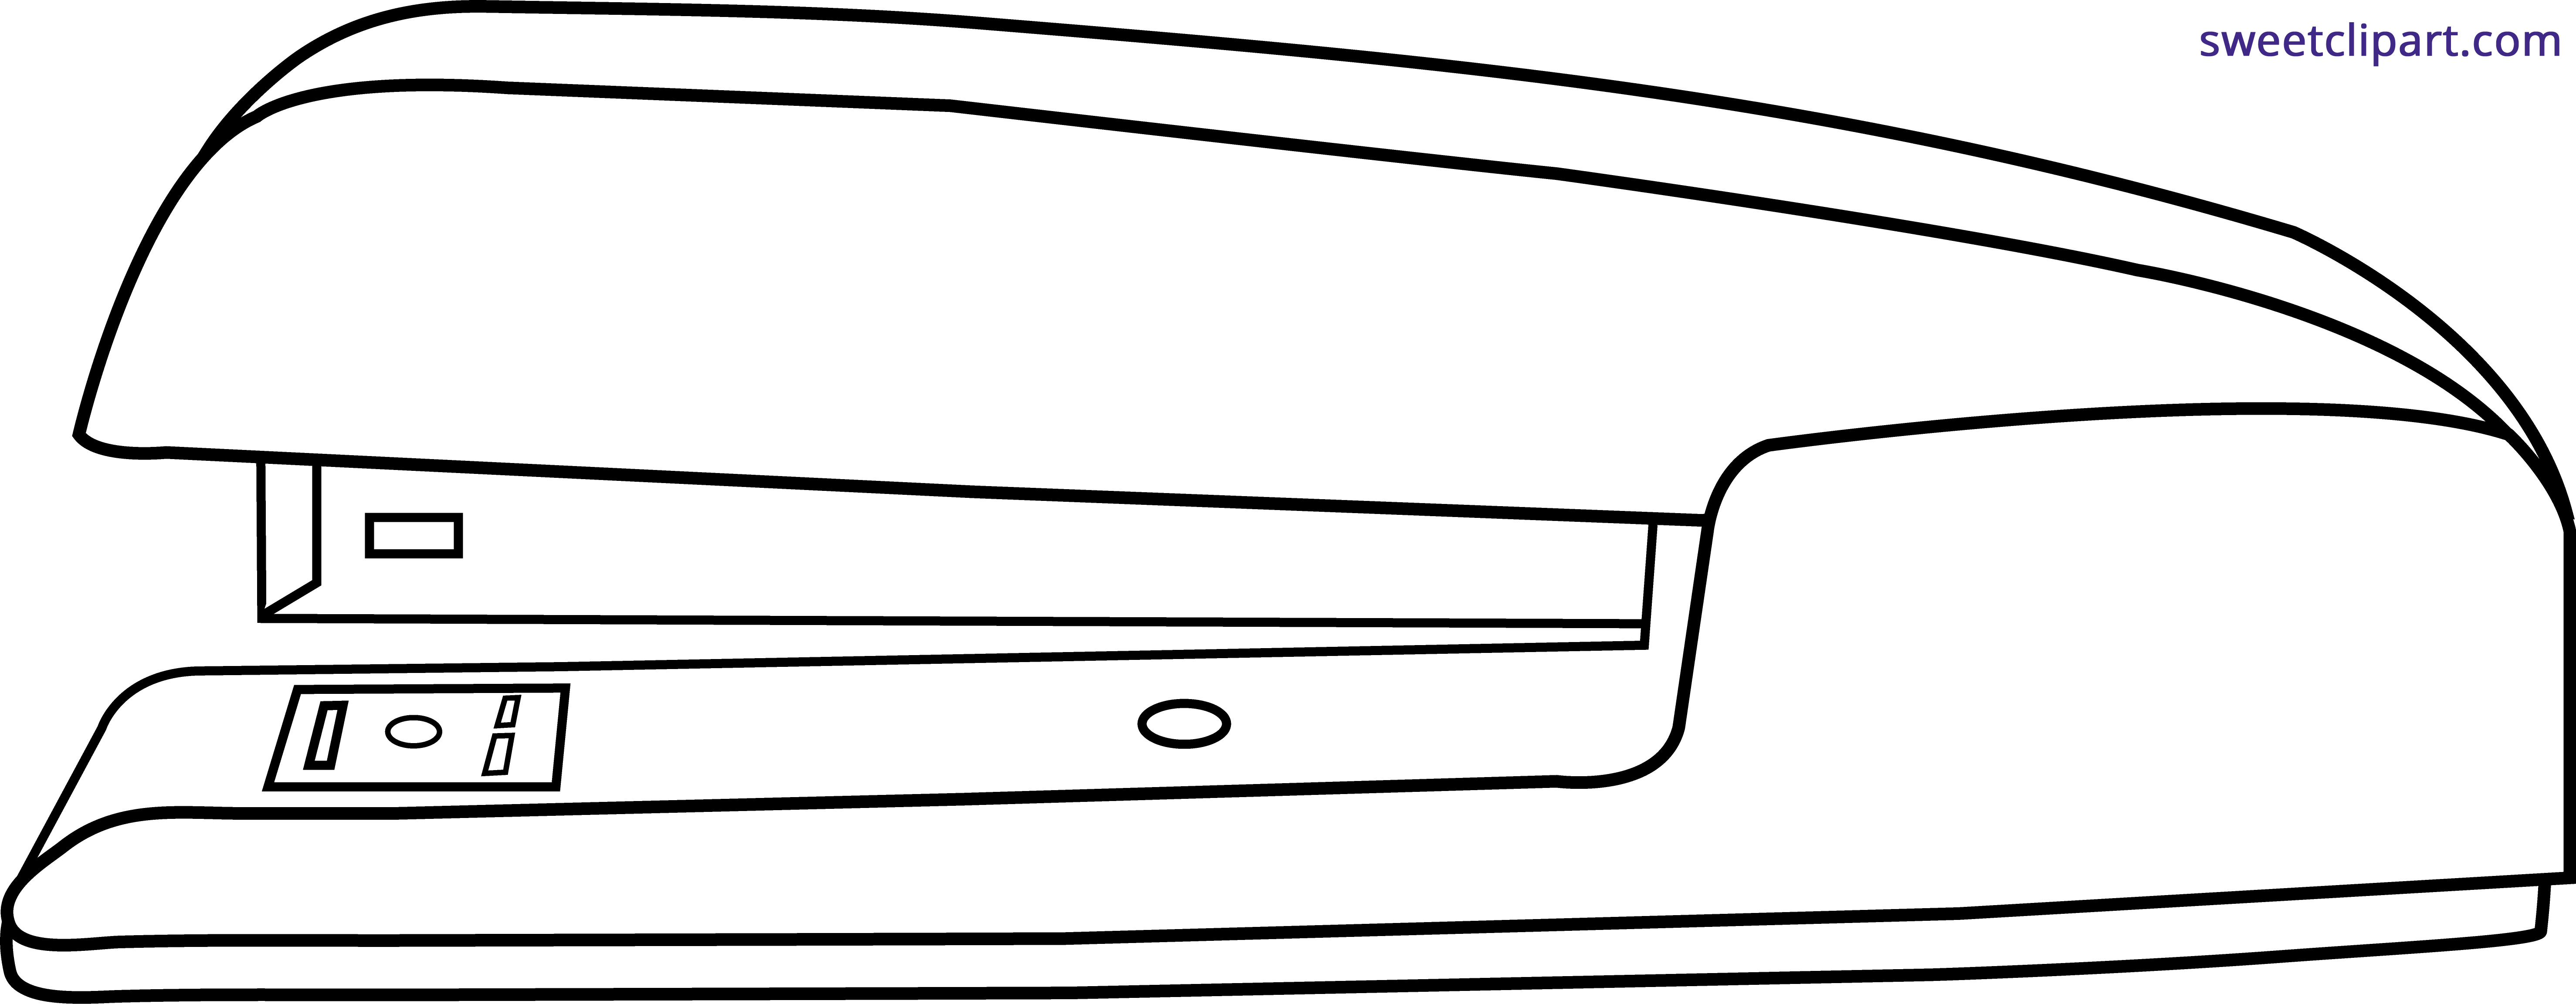 Stapler drawing black and white. Simple lineart clipart sweet